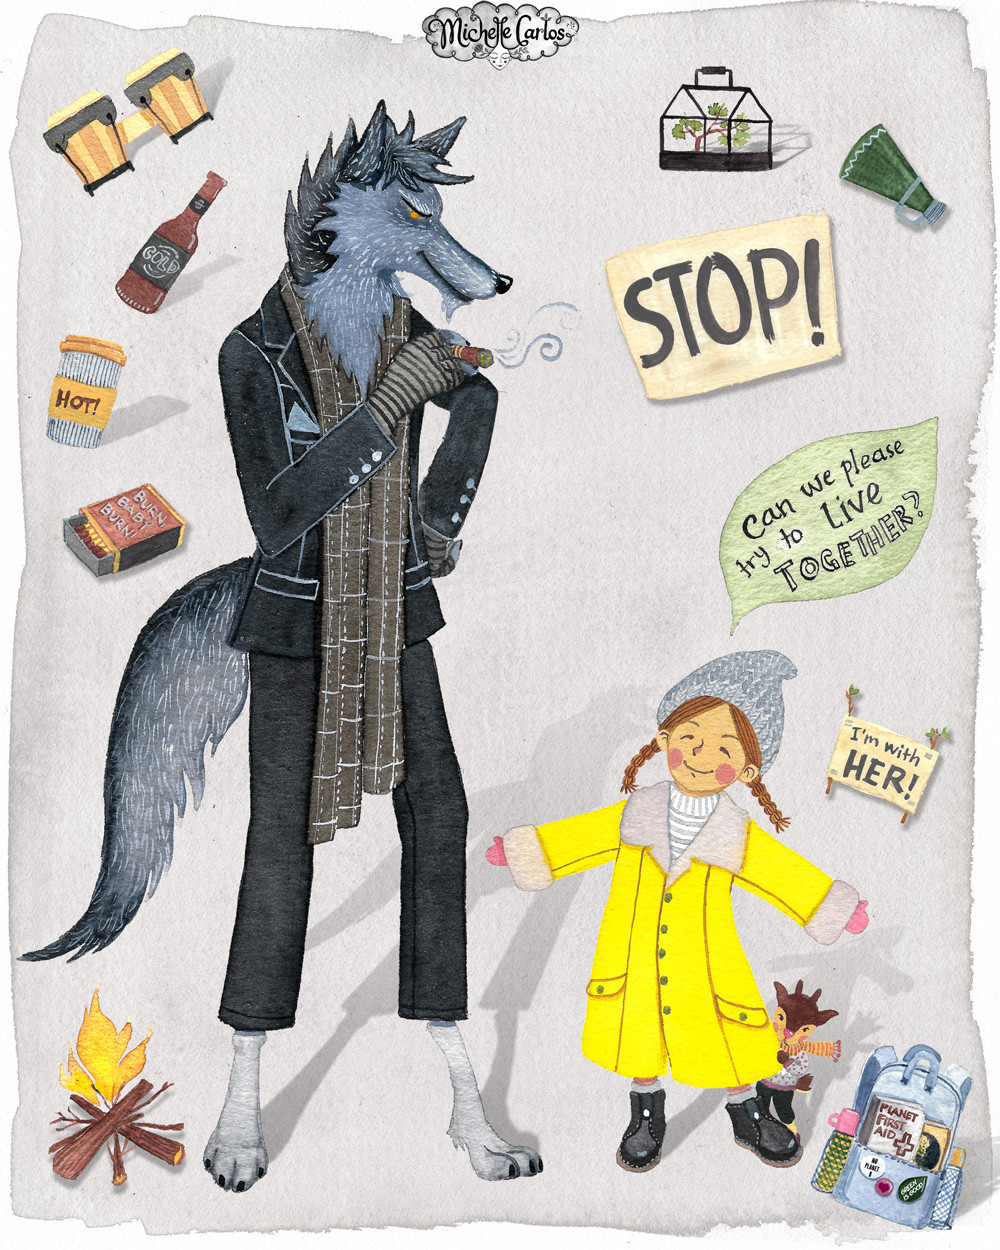 A girl talking to a smoking wolf wearing a suit